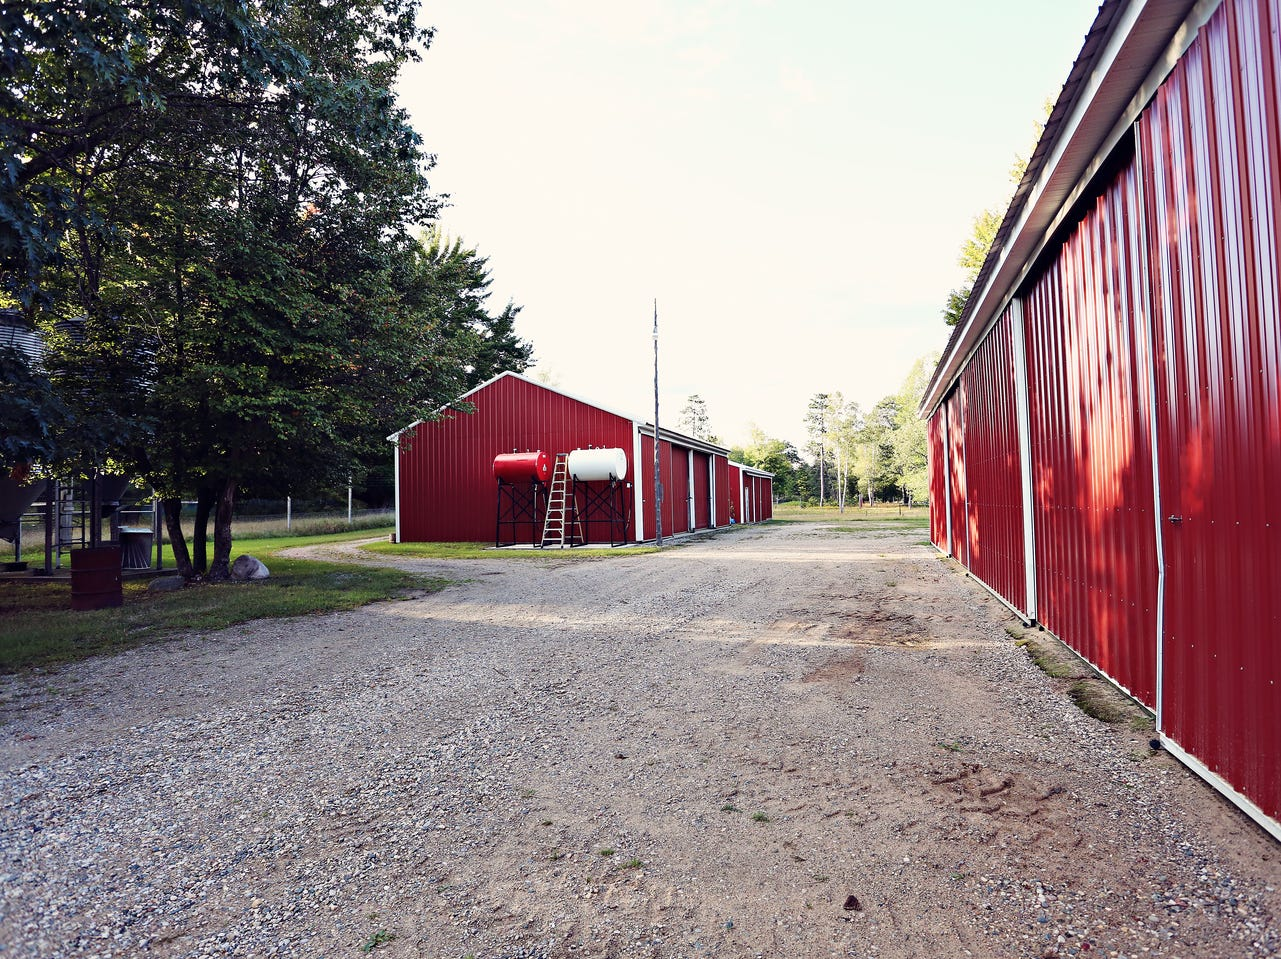 """1""""It's very unique and there are multiple homes and multiple pole barns on the property,"""" said Kyle O'Grady, the Realtor who listed the property."""